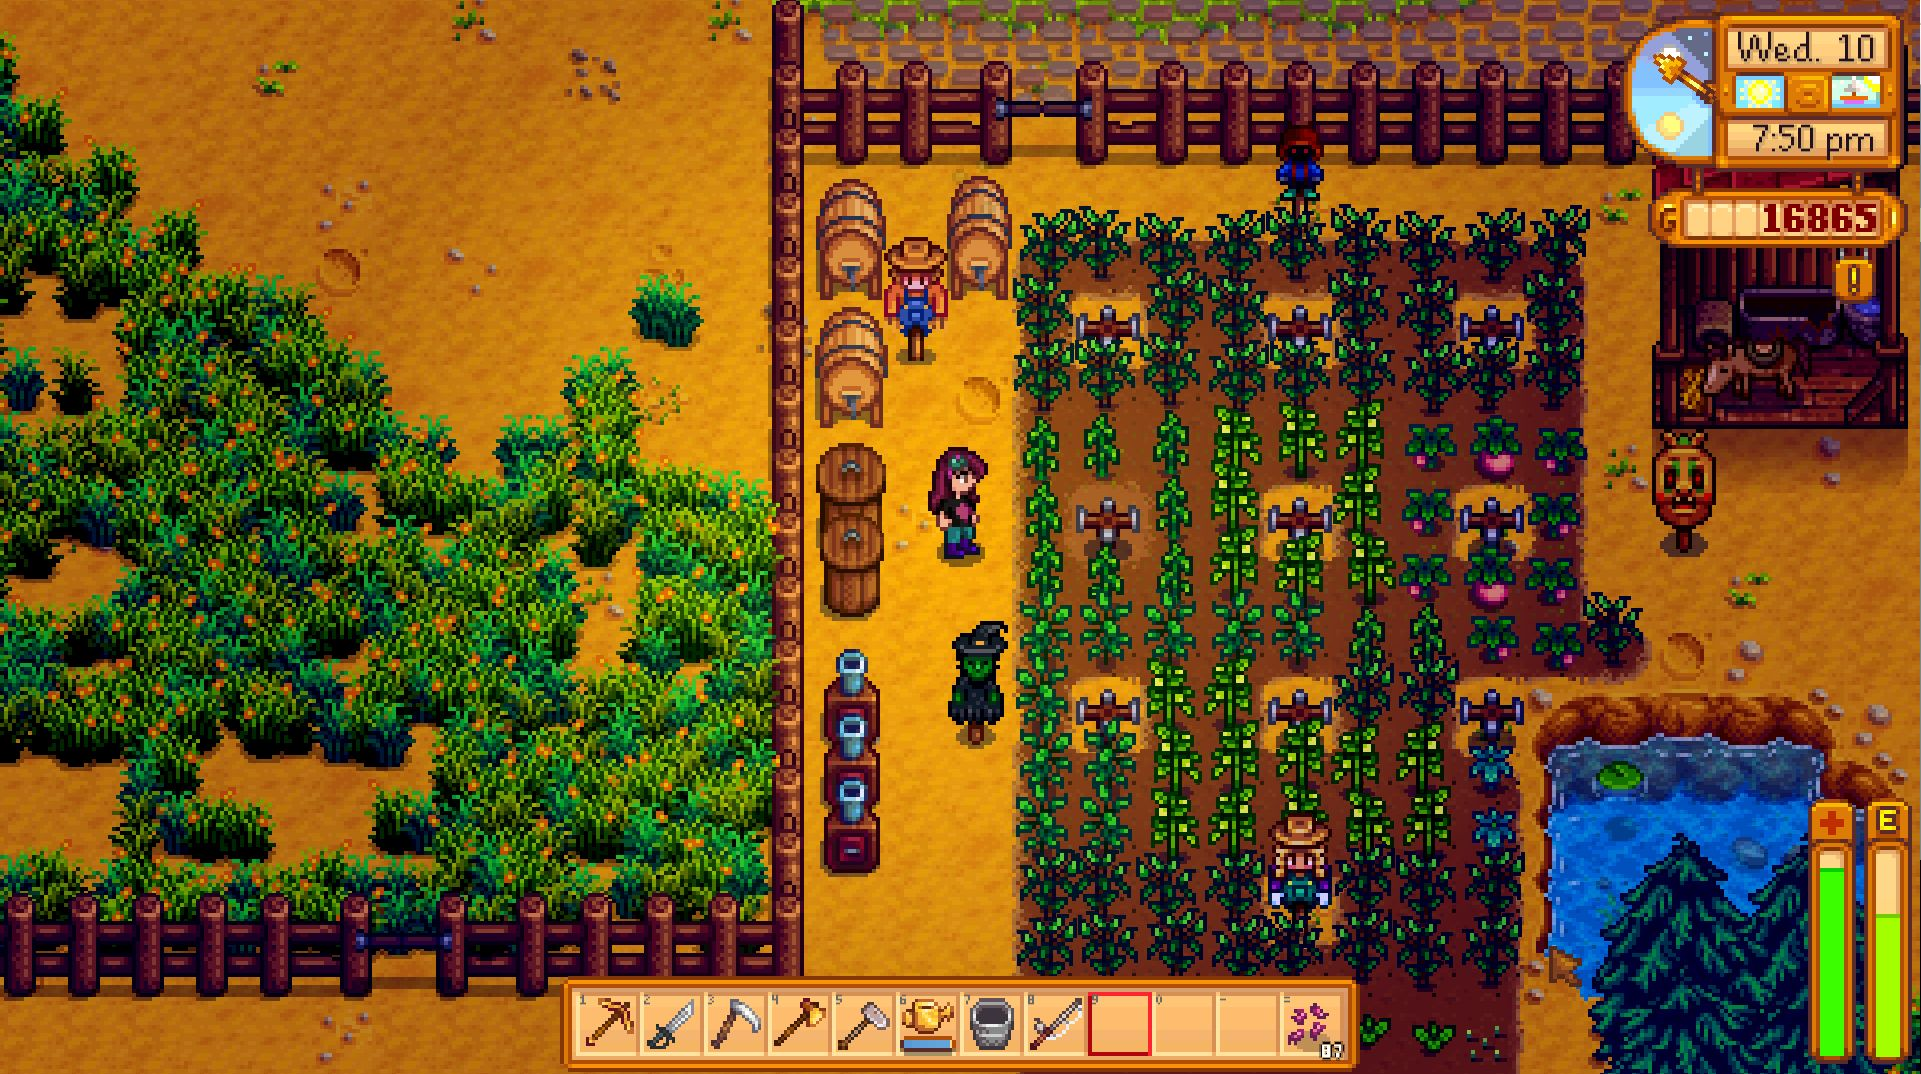 Stardew Valley Secrets You May Not Have Found Yet